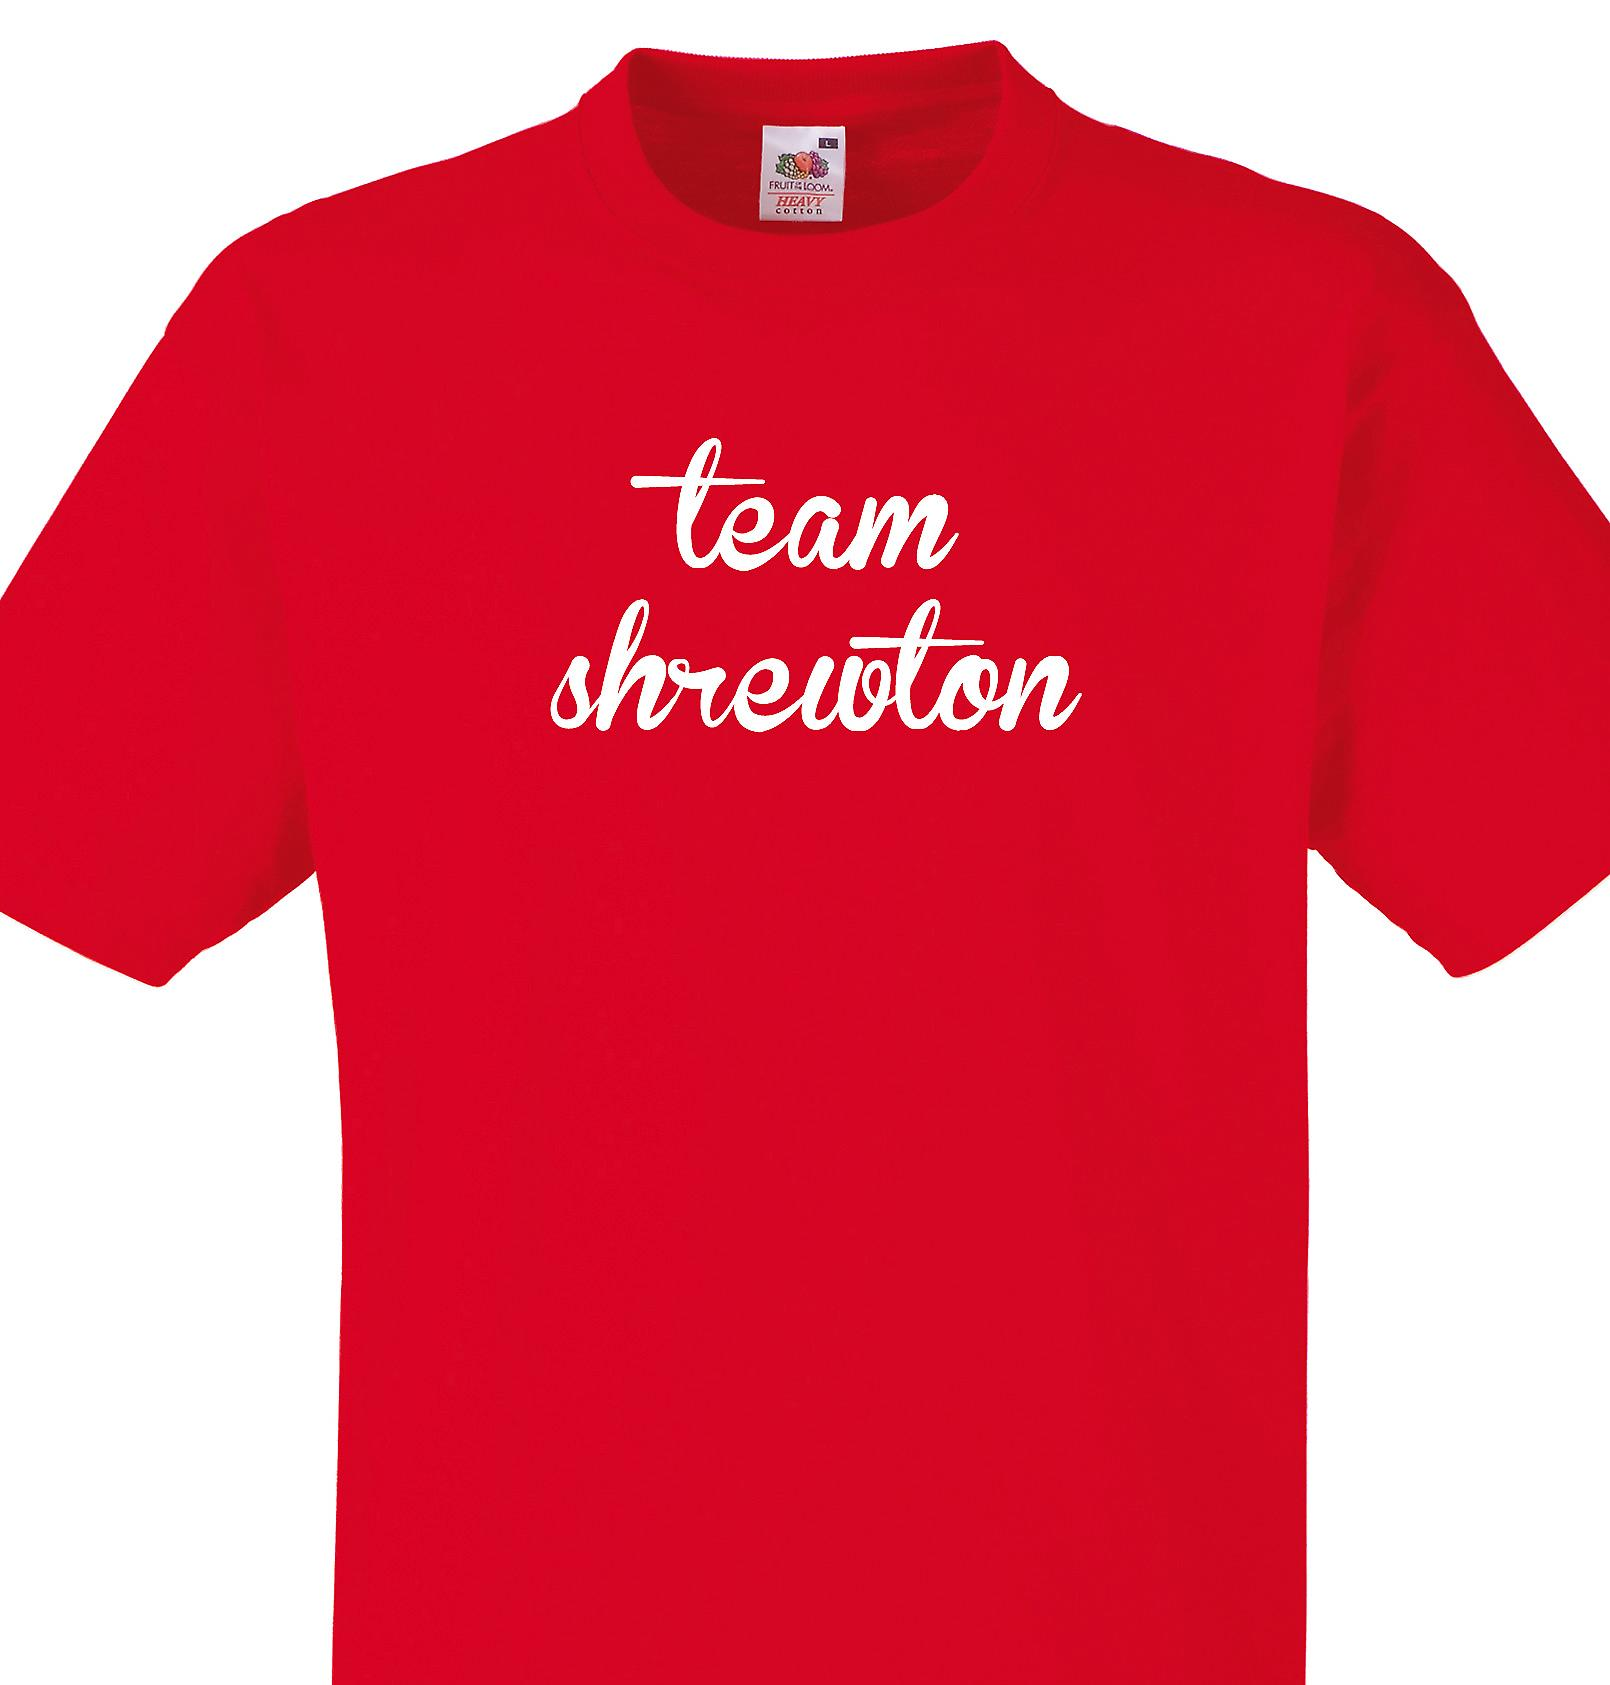 Team Shrewton Red T shirt